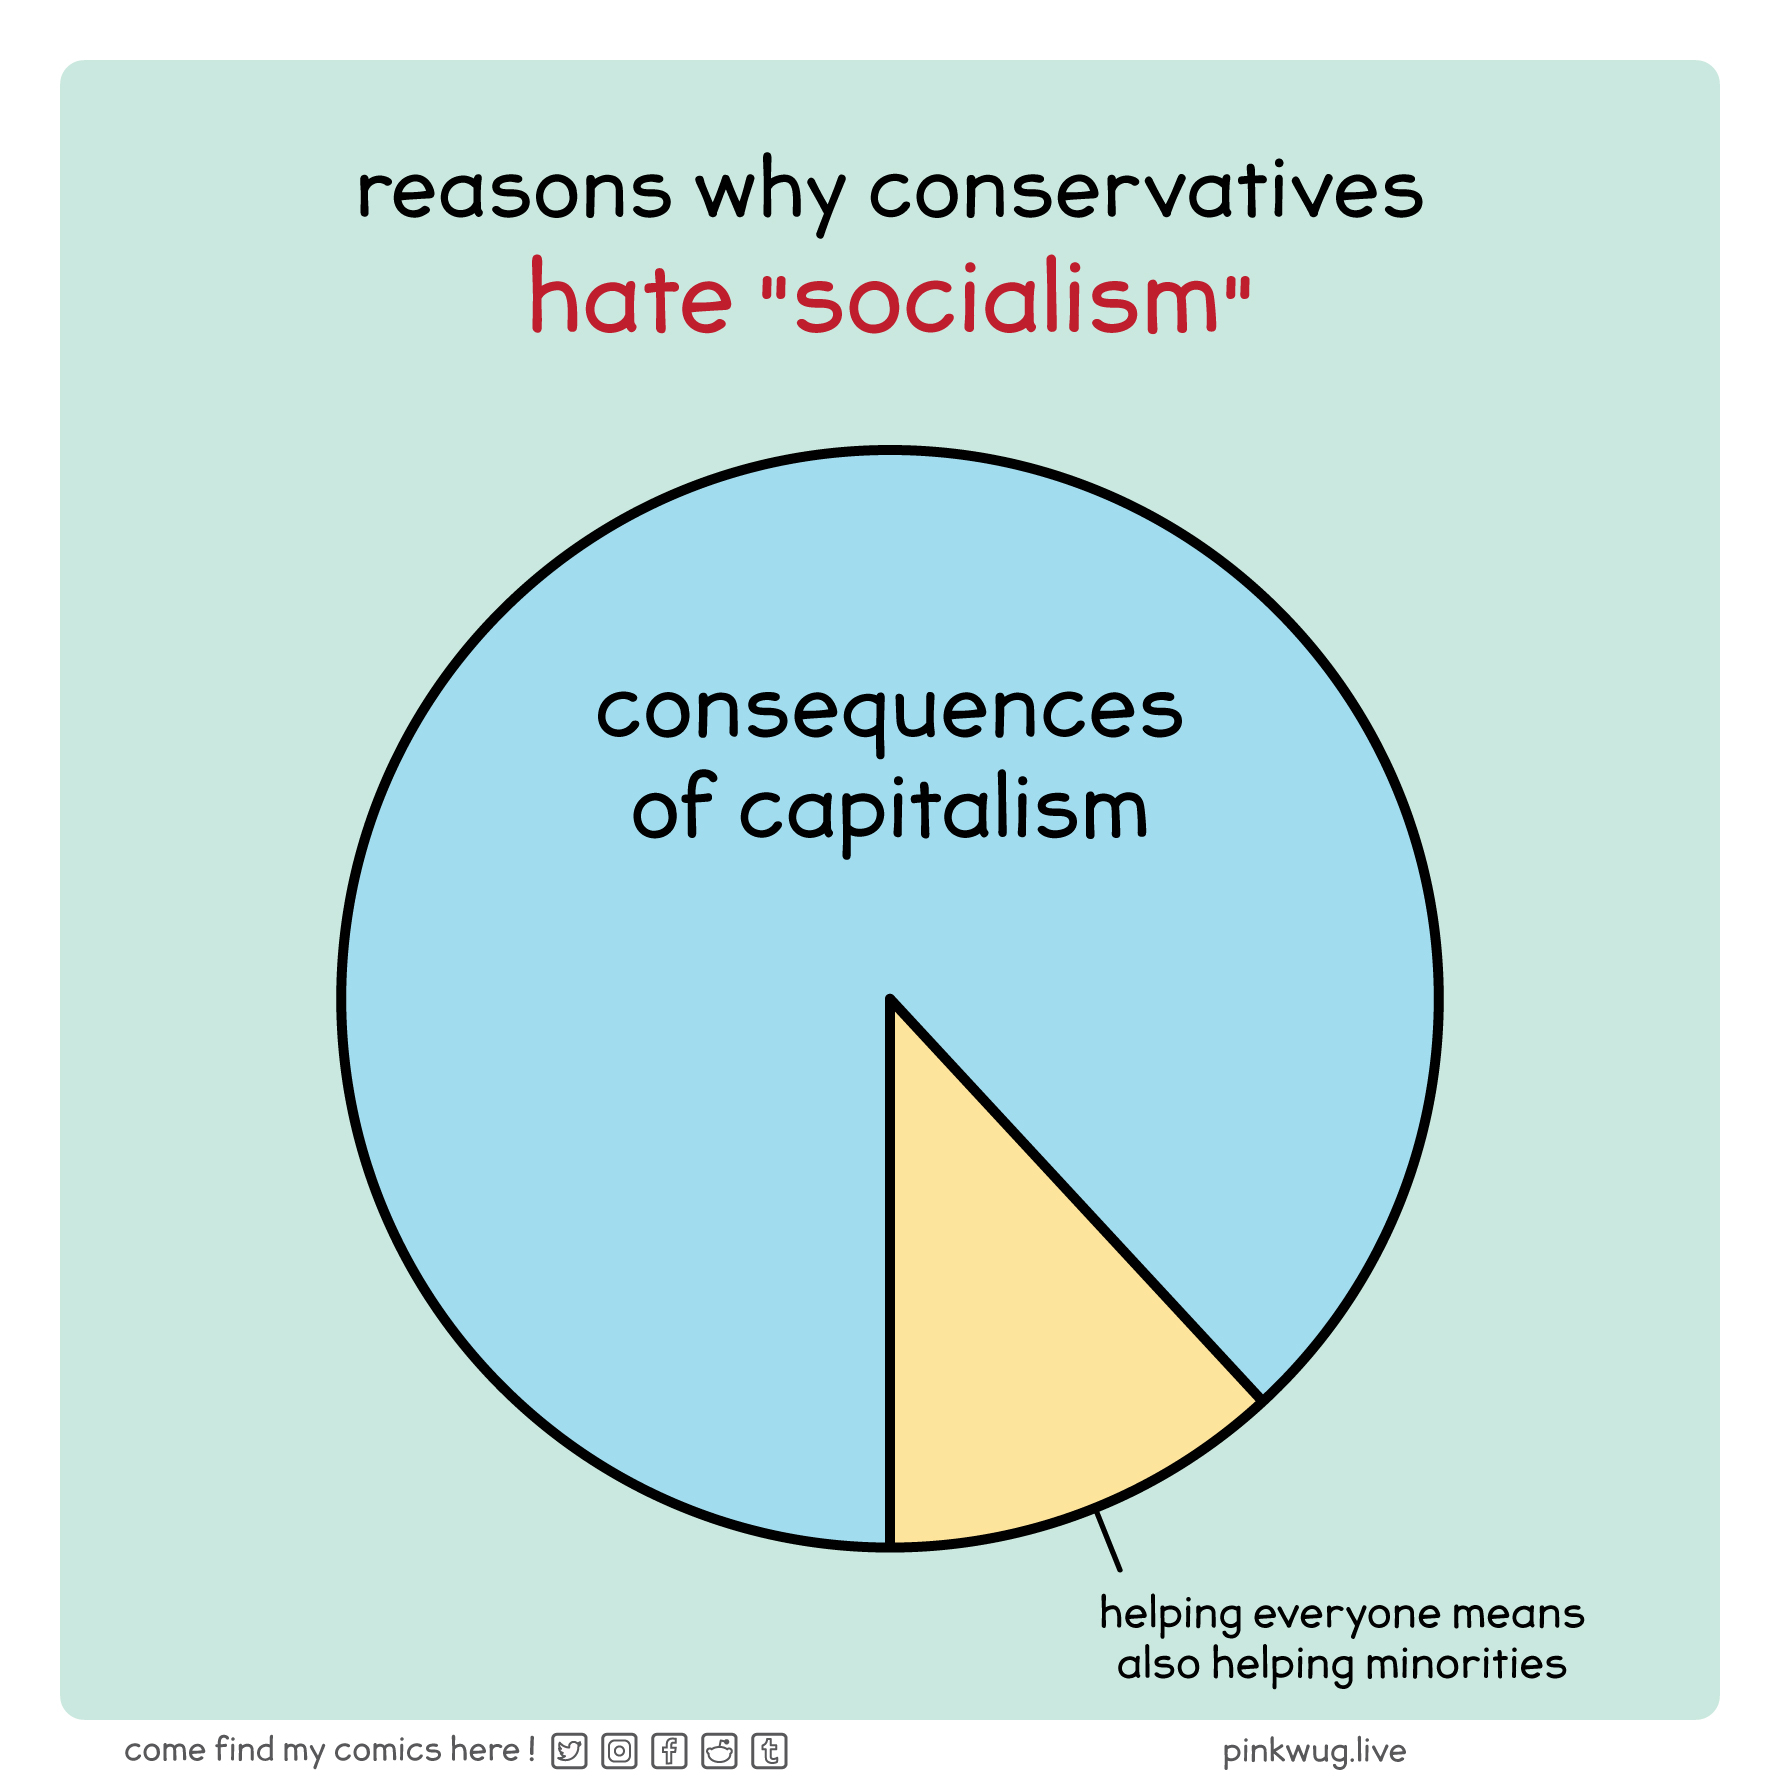 """pinkwug comic: A pie chart named """"reasons why conservatives hate socialism""""  There's a bigger blue part of the pie called """"consequences of capitalism""""  There's a smaller yellow part of the pie called """"helping everyone means also helping minorities"""""""